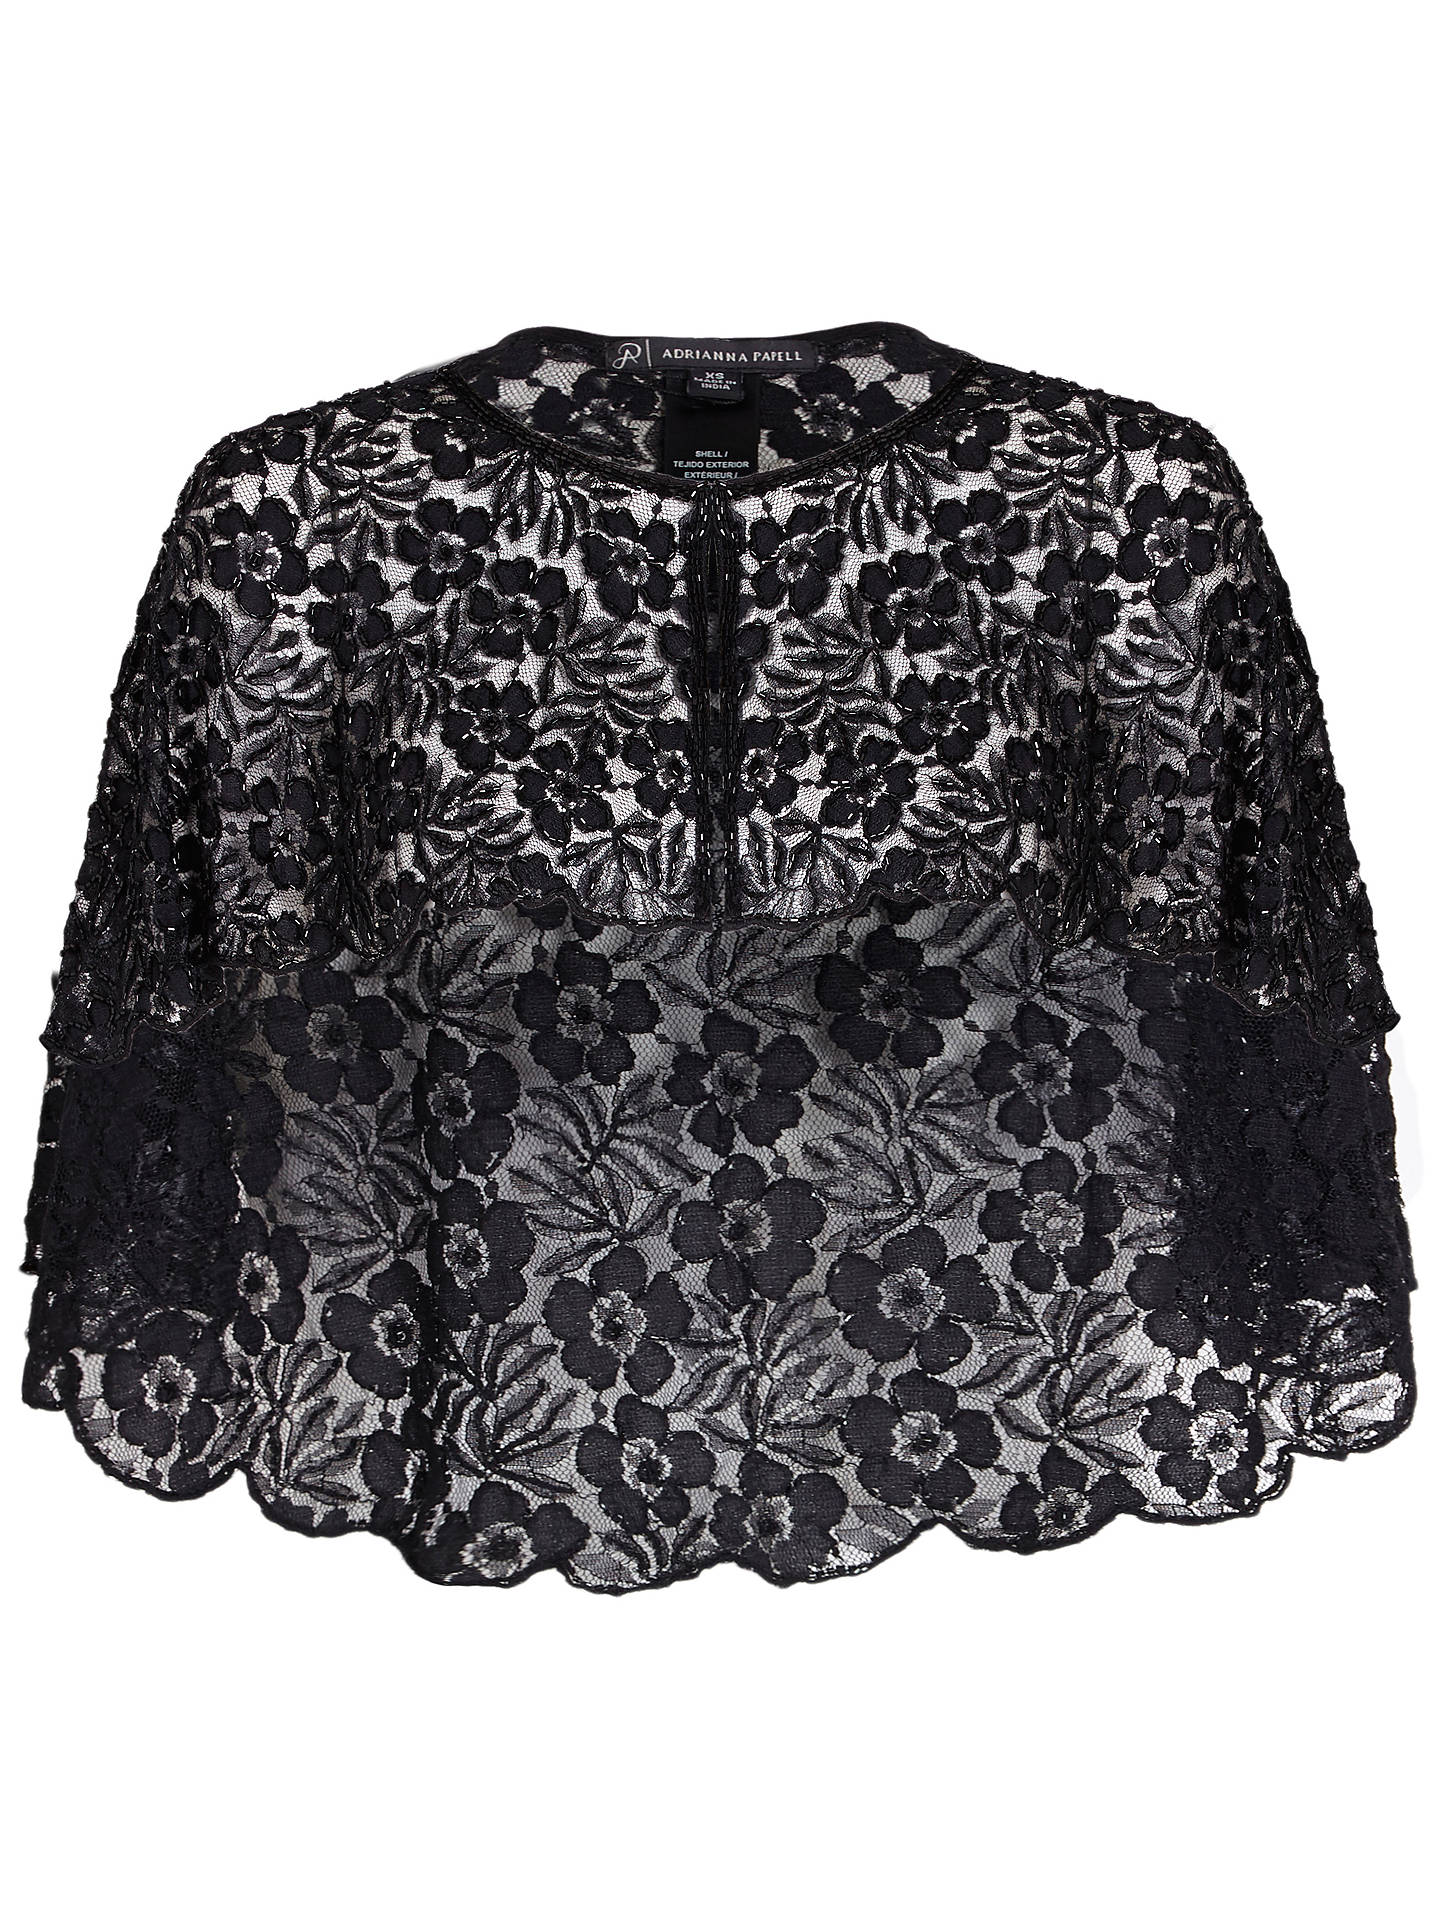 dd333d6857 ... Buy Adrianna Papell Bead Lace Cover Up, Black, XS Online at  johnlewis.com